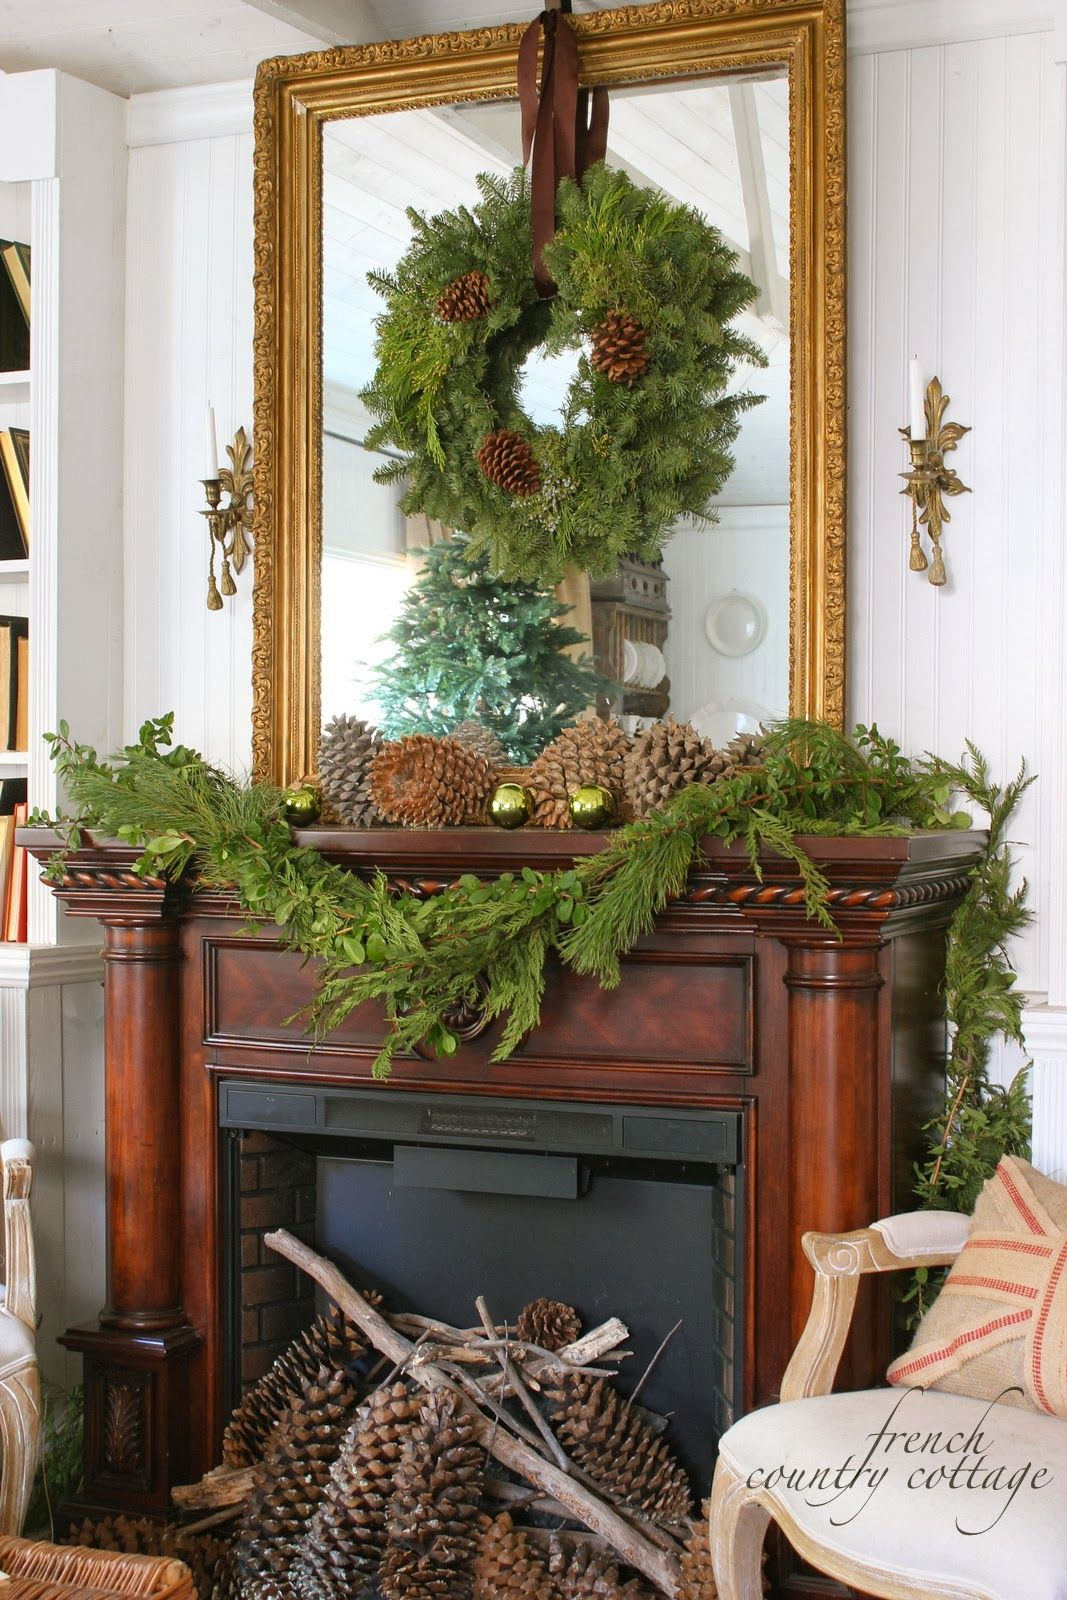 Merry Christmas French Country Cottage Merry christmas